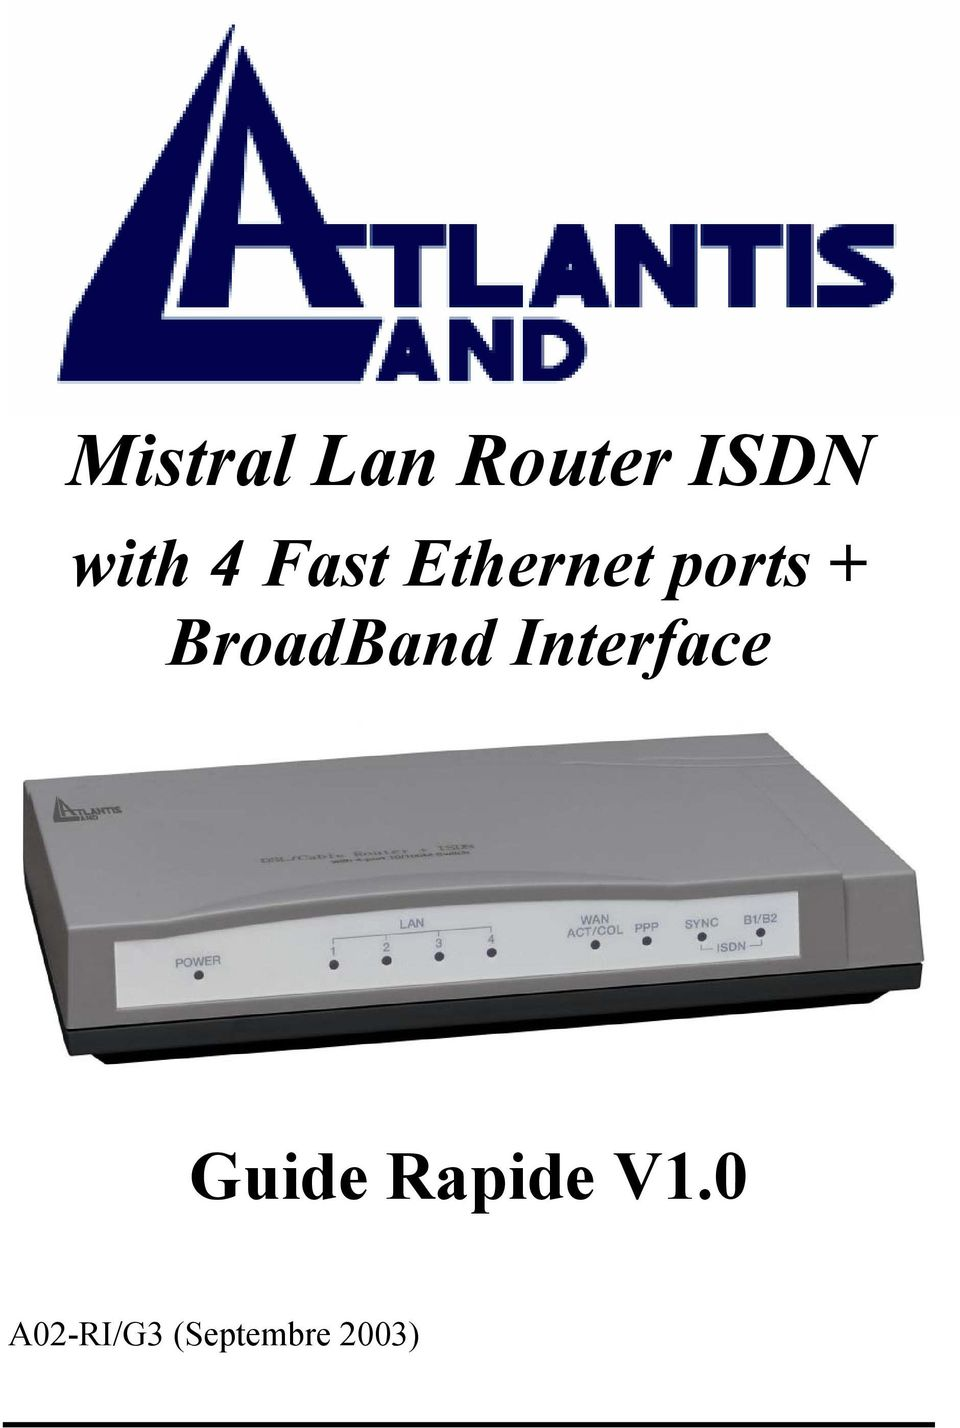 BroadBand Interface Guide